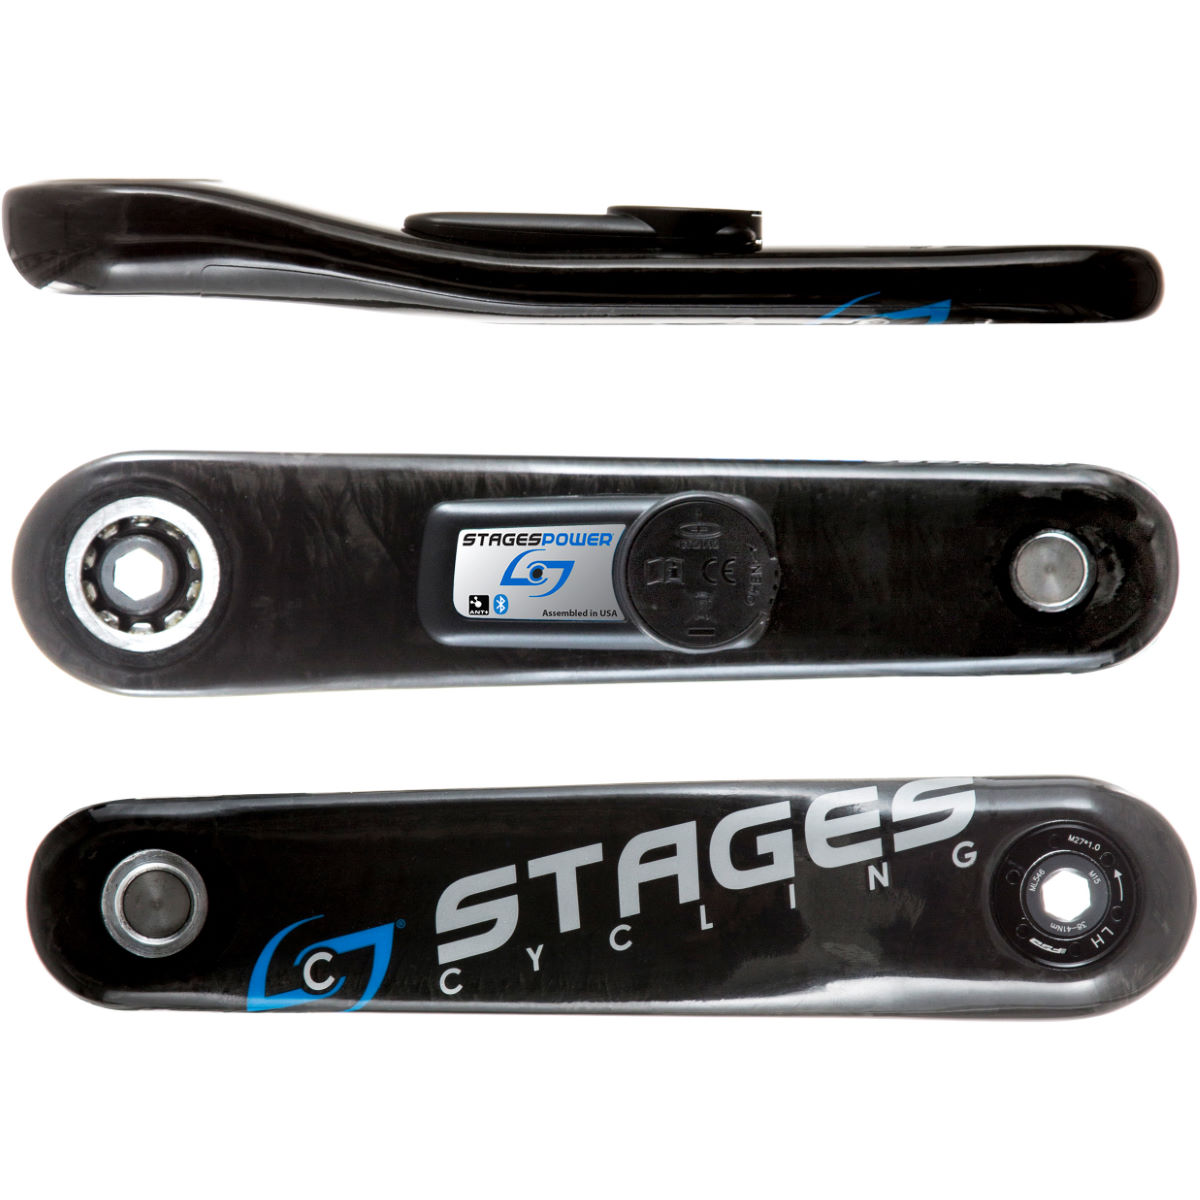 Stages Cycling Stages Cycling Power G3 L - Stages Carbon GXP MTB   Power Meter Cranksets